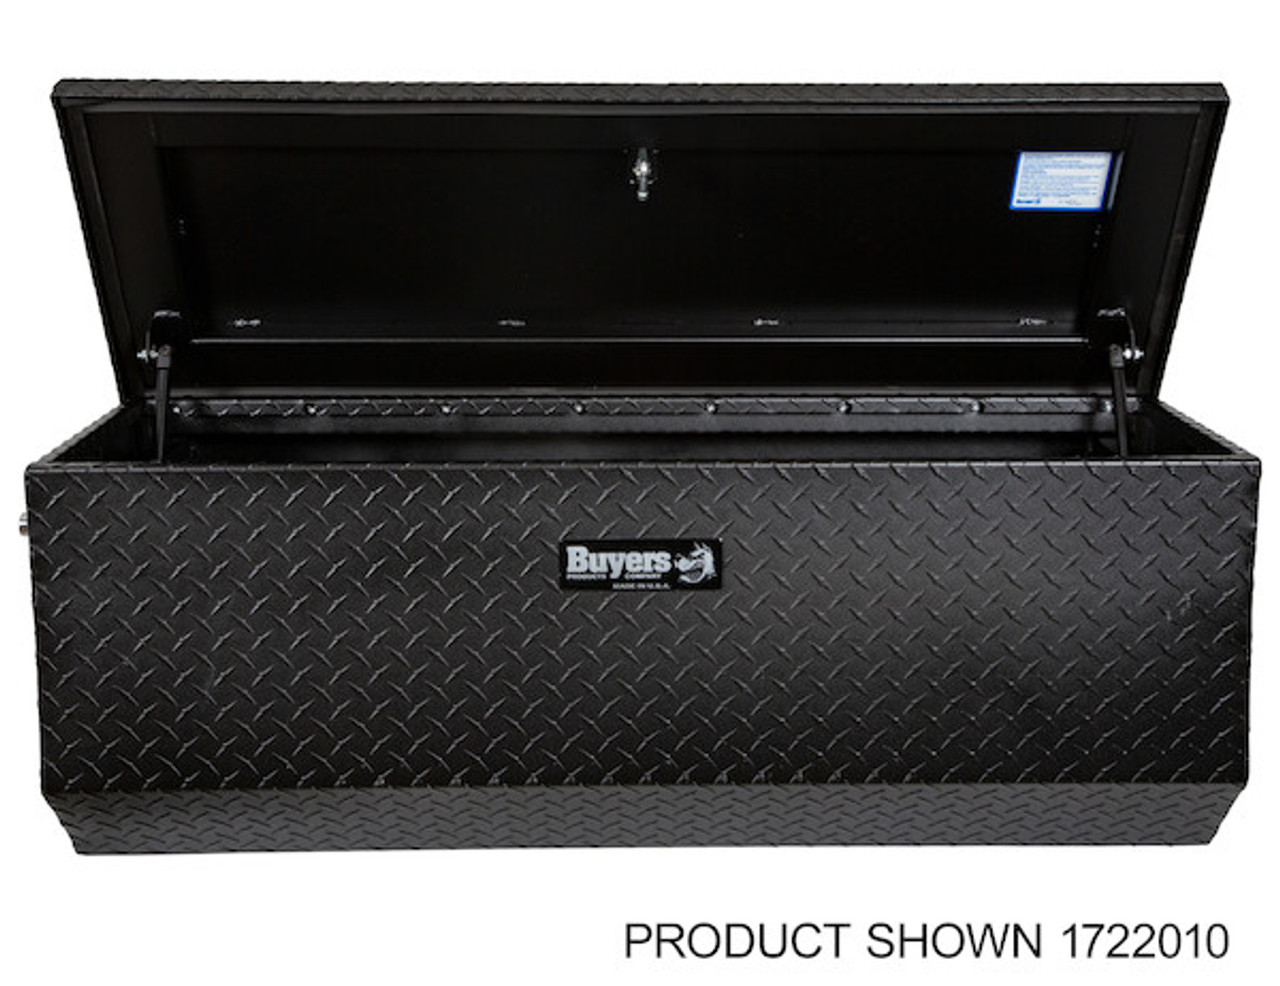 """1722010 BUYERS PRODUCTS TEXTURED MATTE BLACK DIAMOND TREAD ALUMINUM ALL-PURPOSE TOOLBOX WITH ANGLED BASE 19""""HX20""""DX47""""W Picture # 6"""